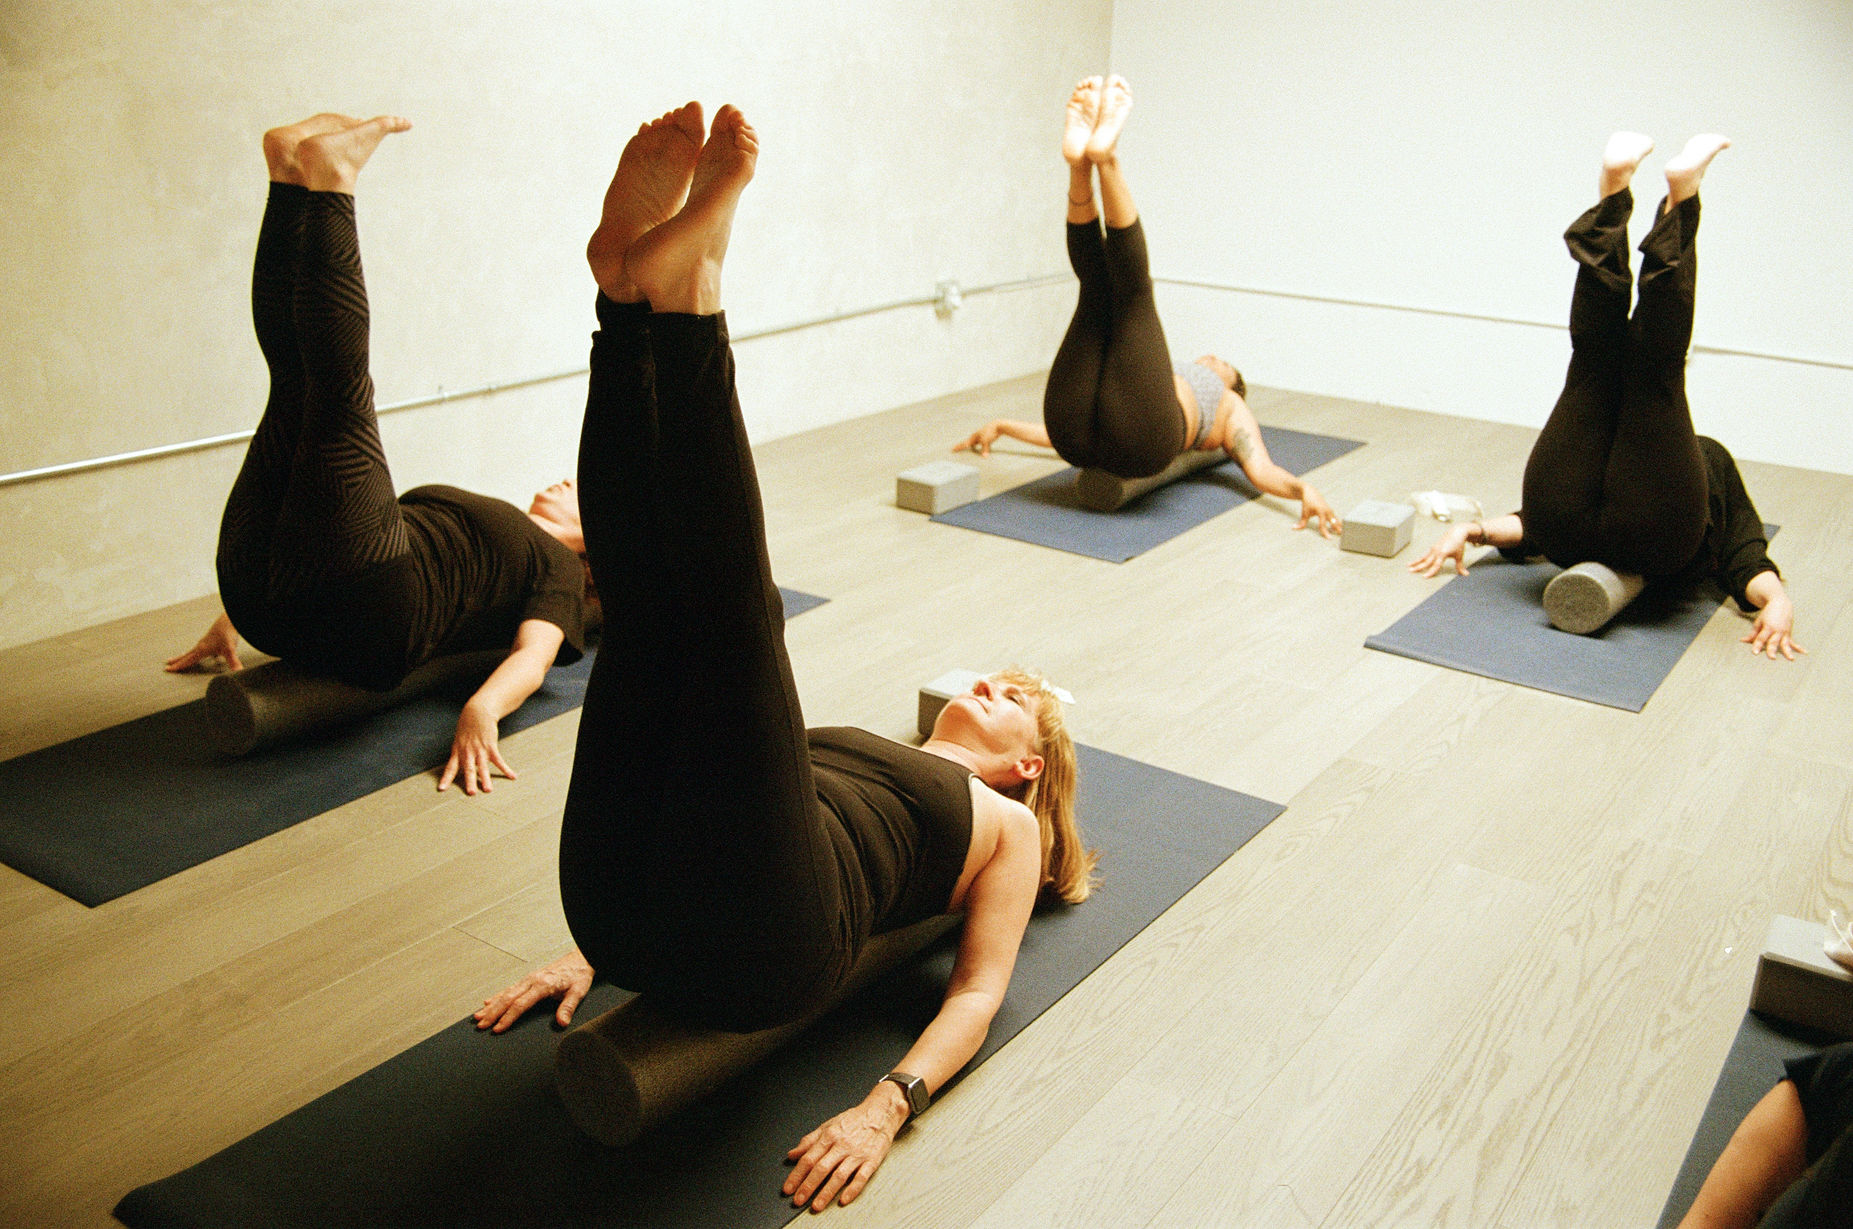 Core Adore - This class combines Pranayamas (breathing exercises,) Yoga and Pilates to revitalize and connect to the Diaphragm, Psoas, Abdominals and Pelvis. The practice offers a powerful physical and emotional energetic boost. This is an all levels practice, no previous Yoga or Pilates experience necessary.